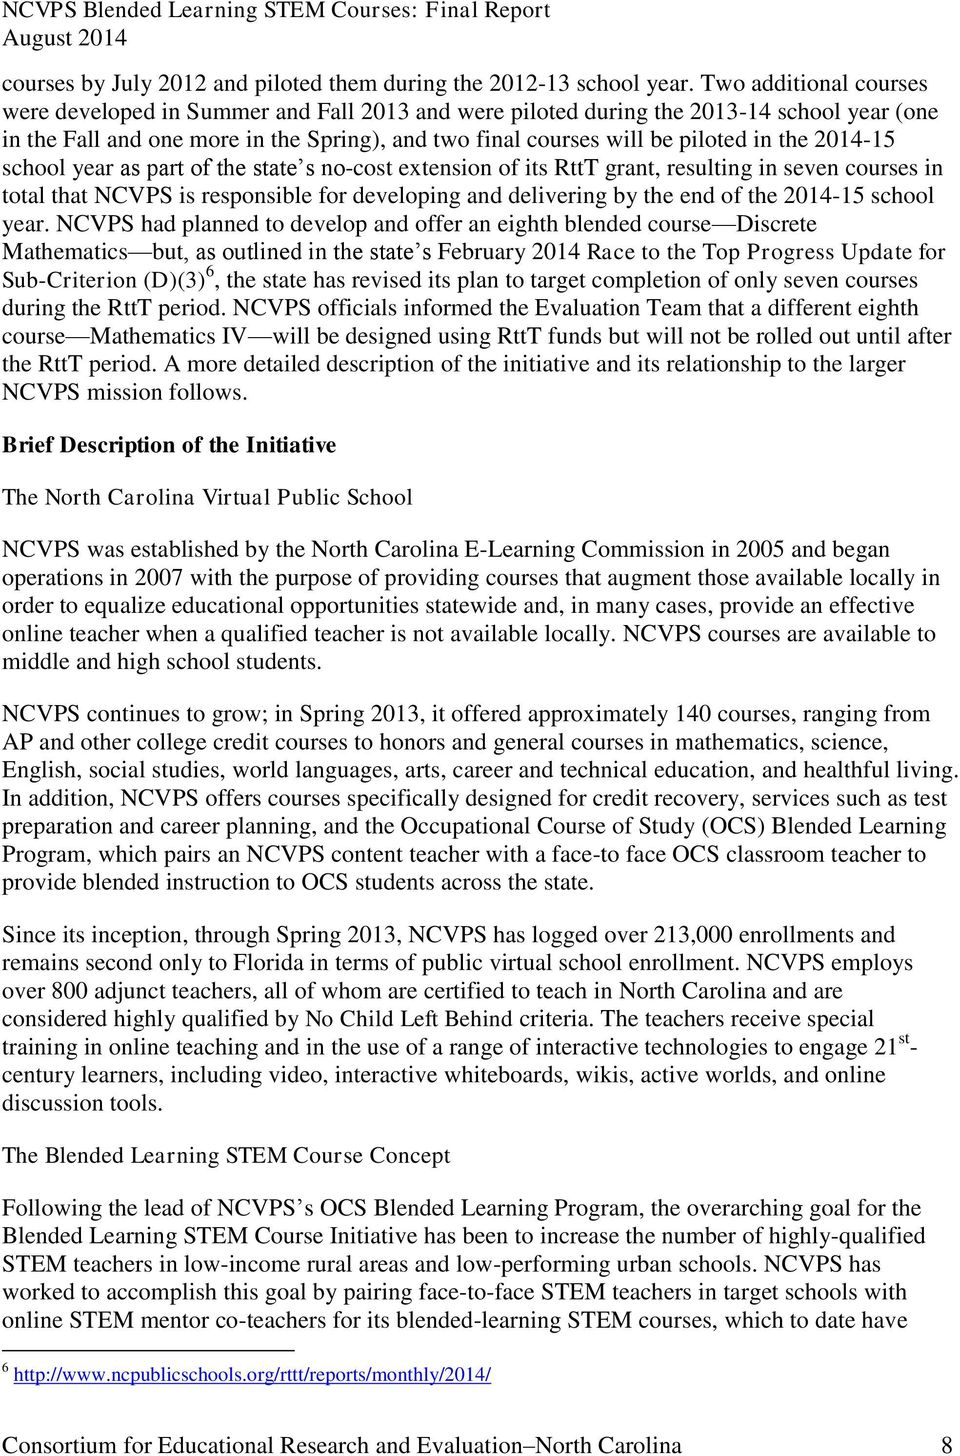 the 2014-15 school year as part of the state s no-cost extension of its RttT grant, resulting in seven courses in total that NCVPS is responsible for developing and delivering by the end of the